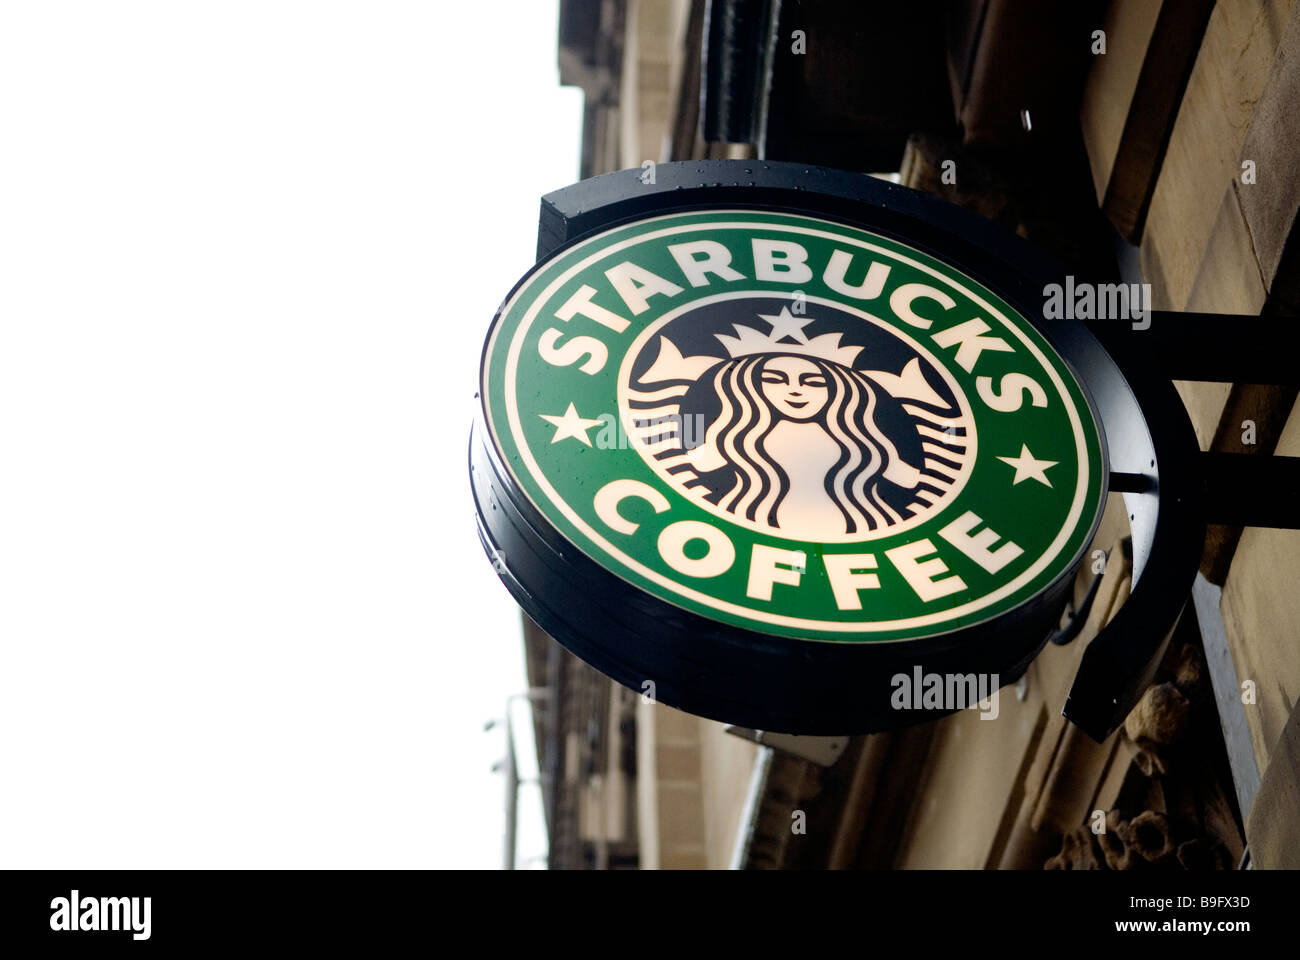 Starbucks Coffee sign in Manchester city centre UK - Stock Image